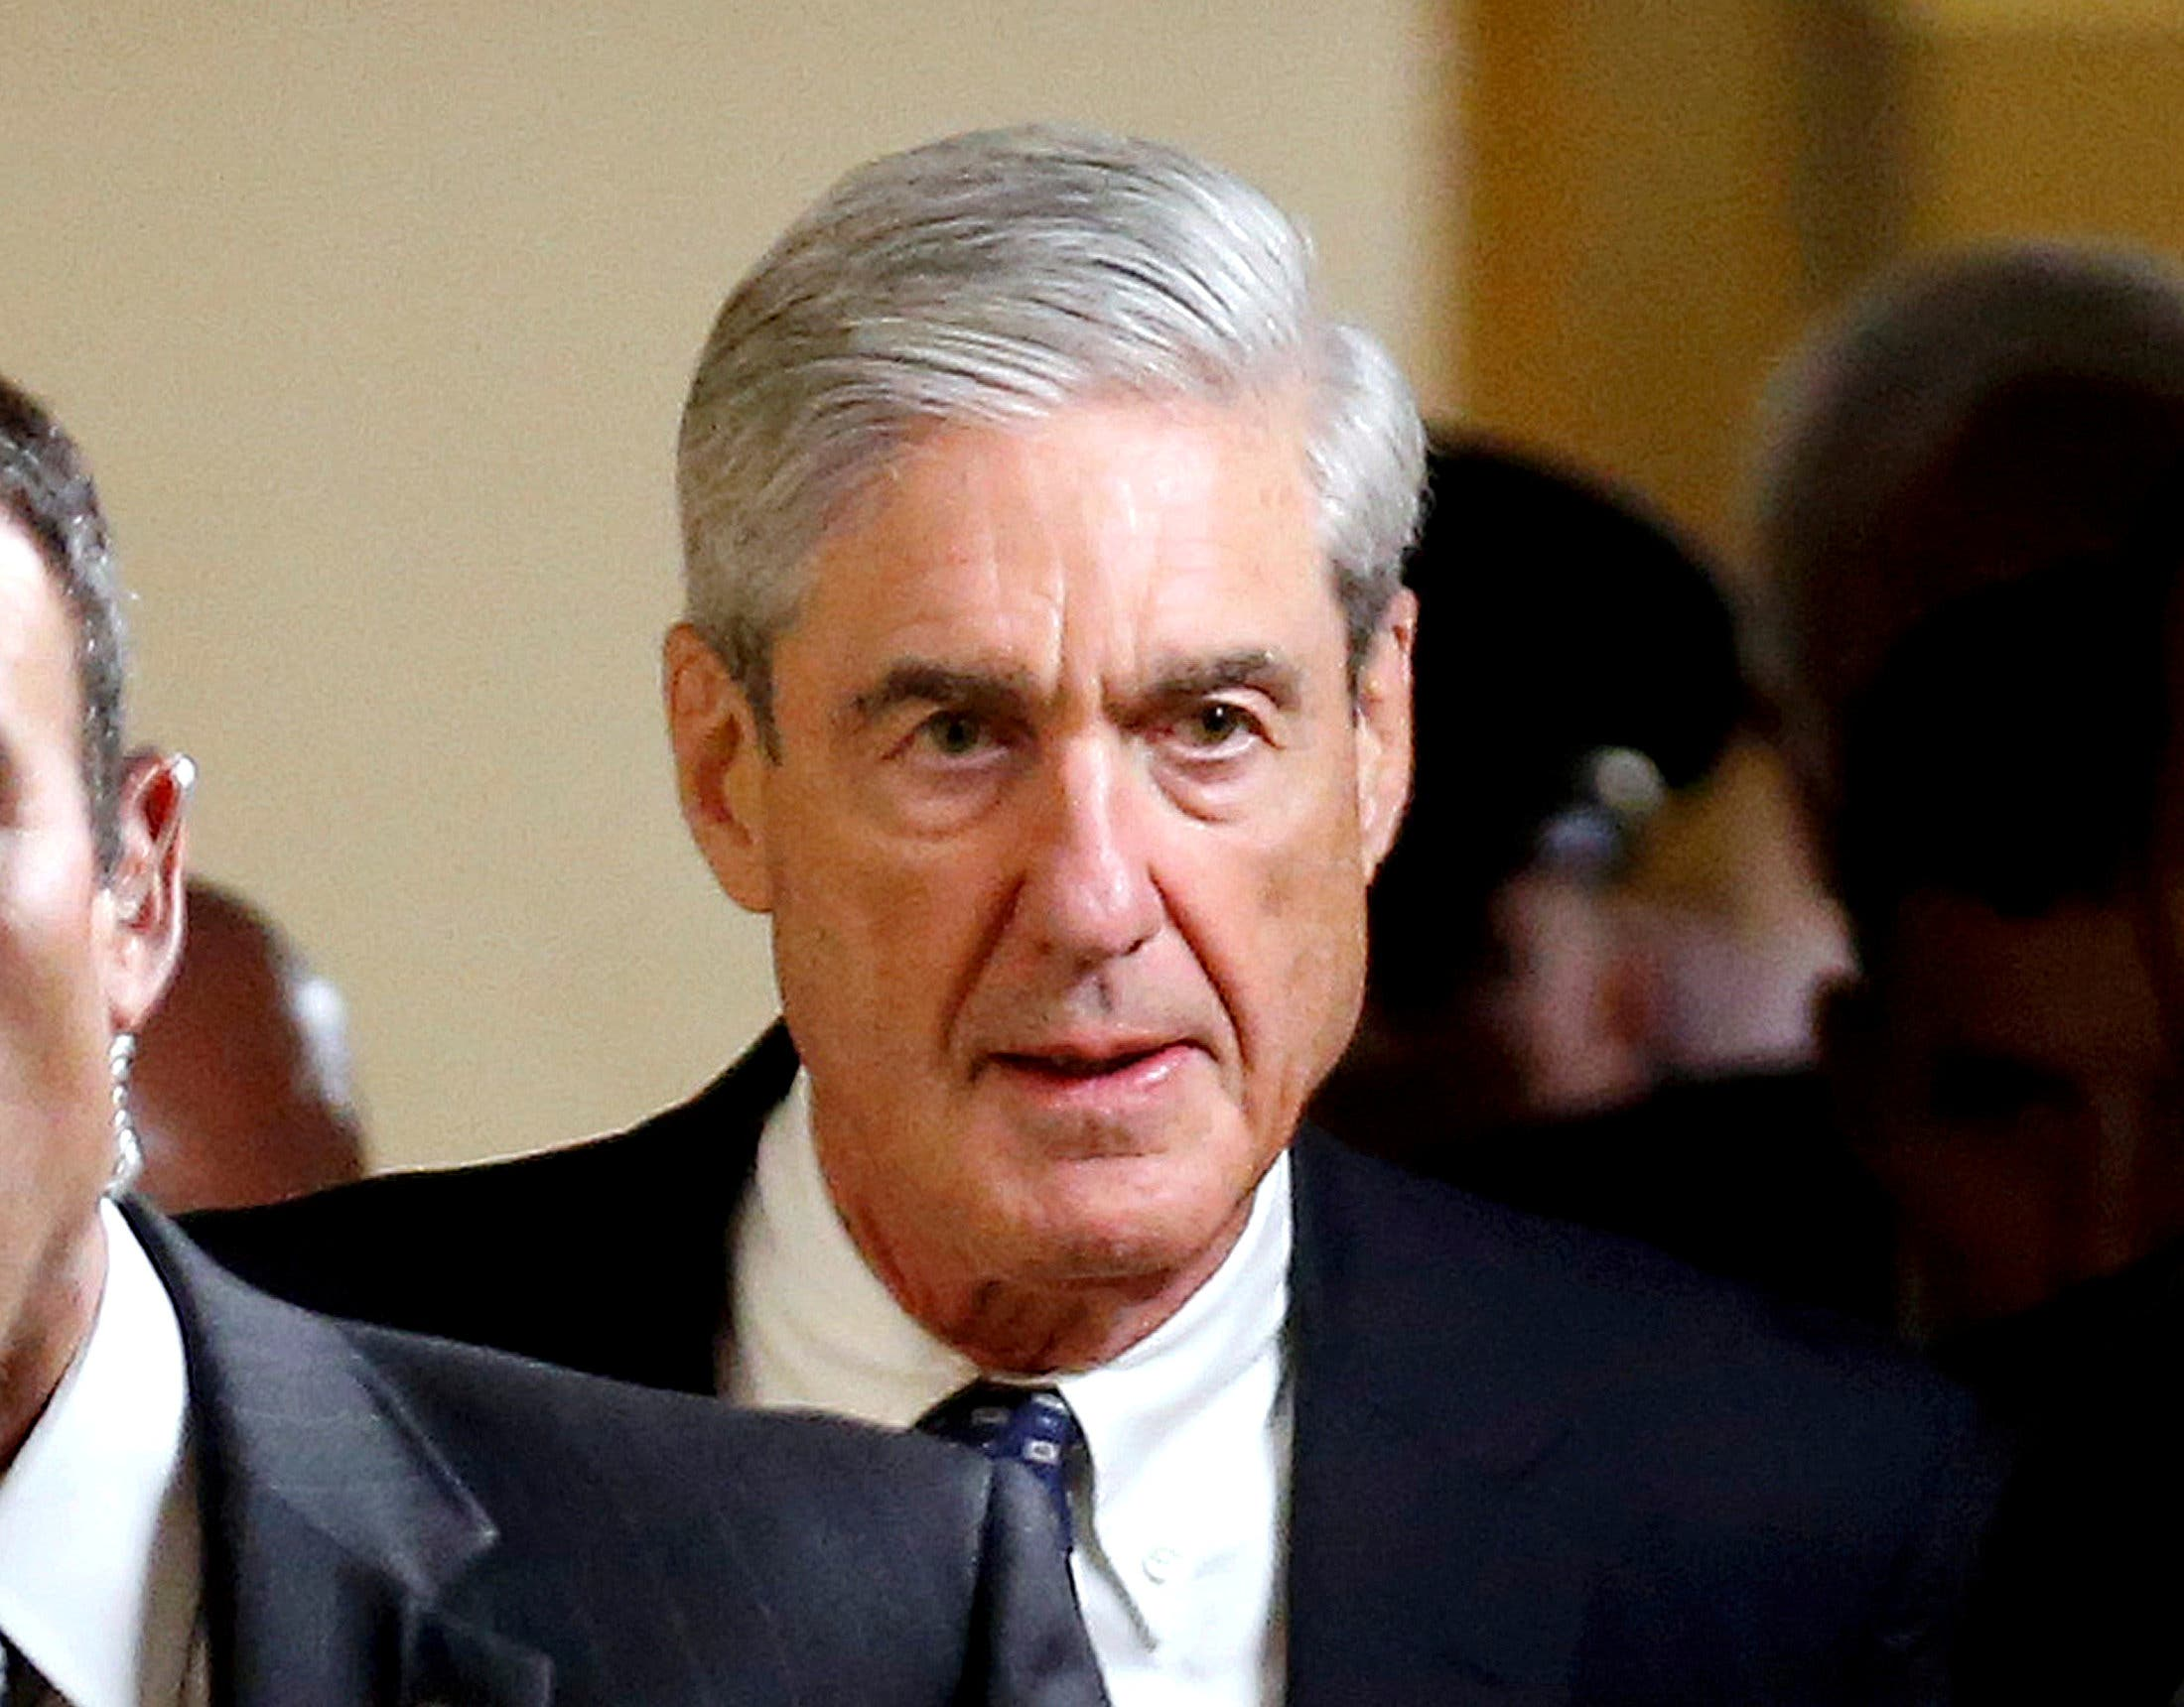 FILE PHOTO: Special Counsel Robert Mueller departs after briefing members of the U.S. Senate on his investigation into potential collusion between Russia and the Trump campaign on Capitol Hill in Washington, DC, U.S., June 21, 2017. REUTERS/Joshua Roberts/File Photo